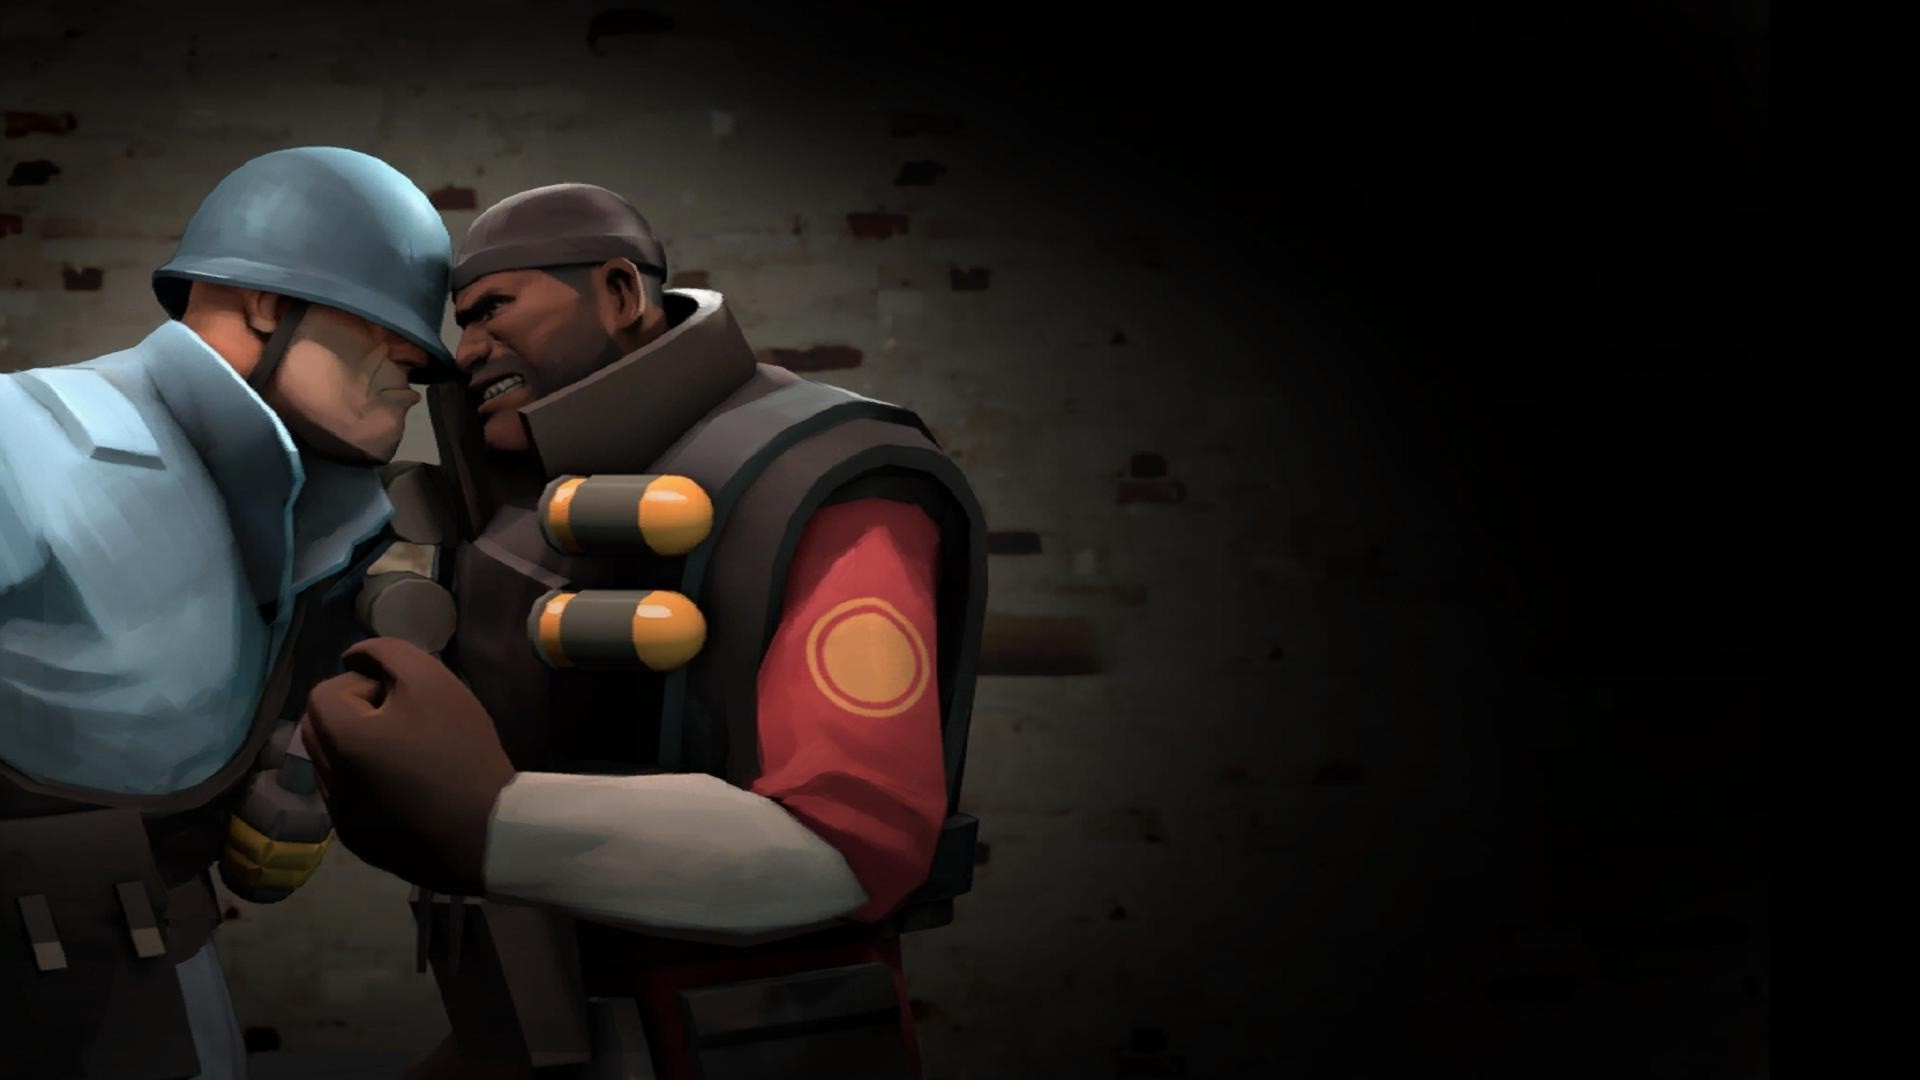 Team Fortress 2 Demoman Wallpapers HD Desktop and Mobile 1920x1080